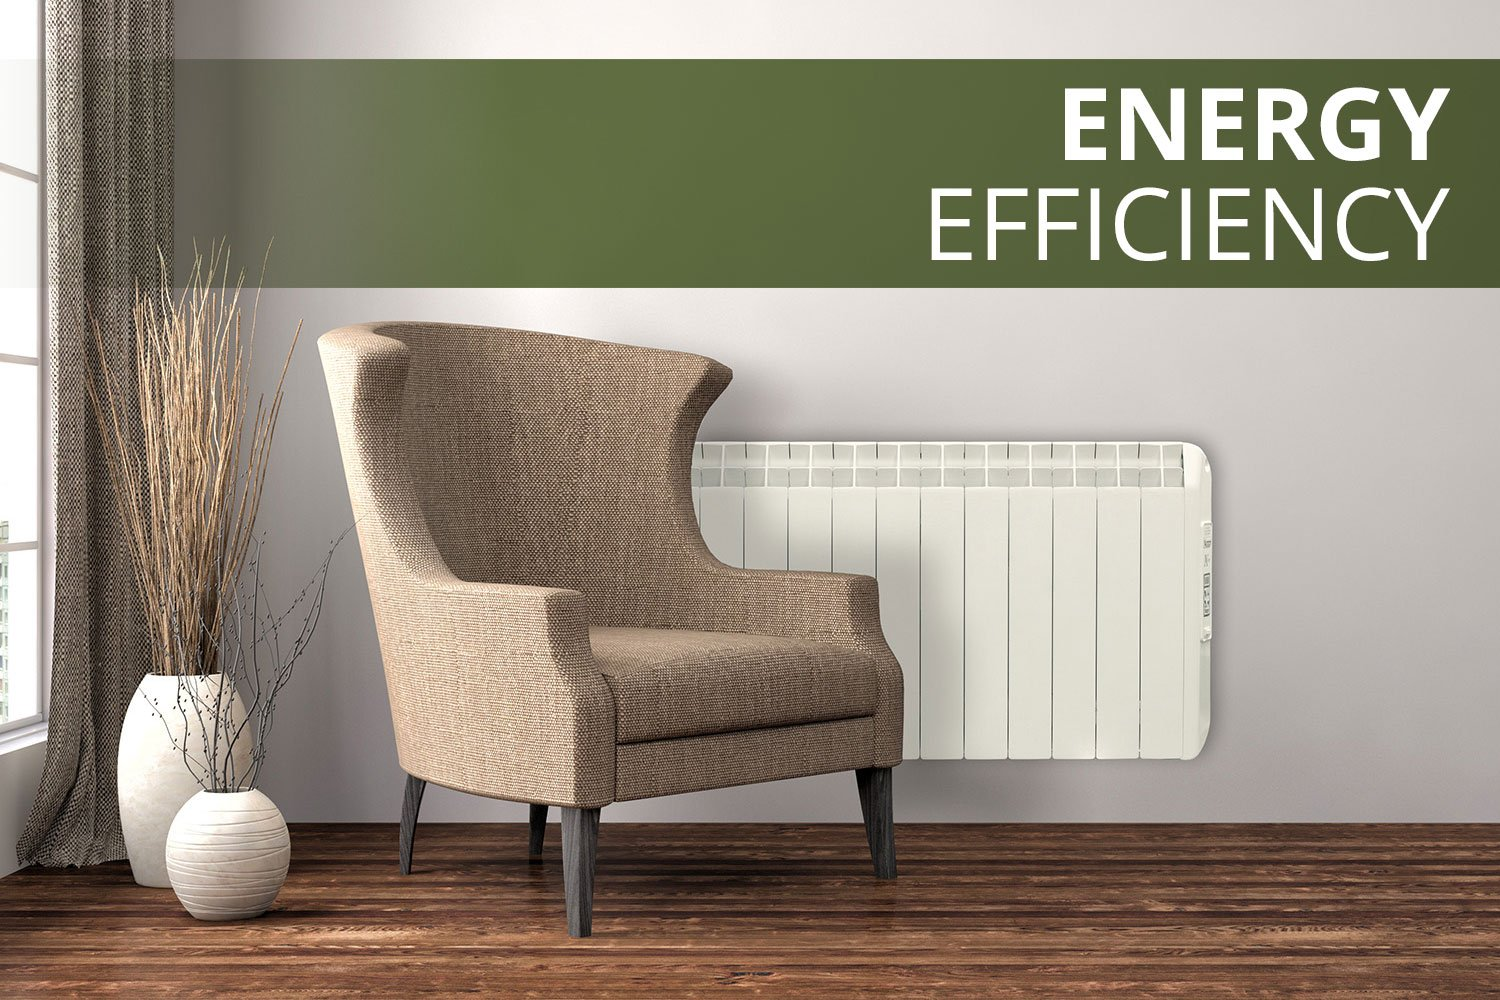 Armchair next to Farho electric heater in Energy Efficient room